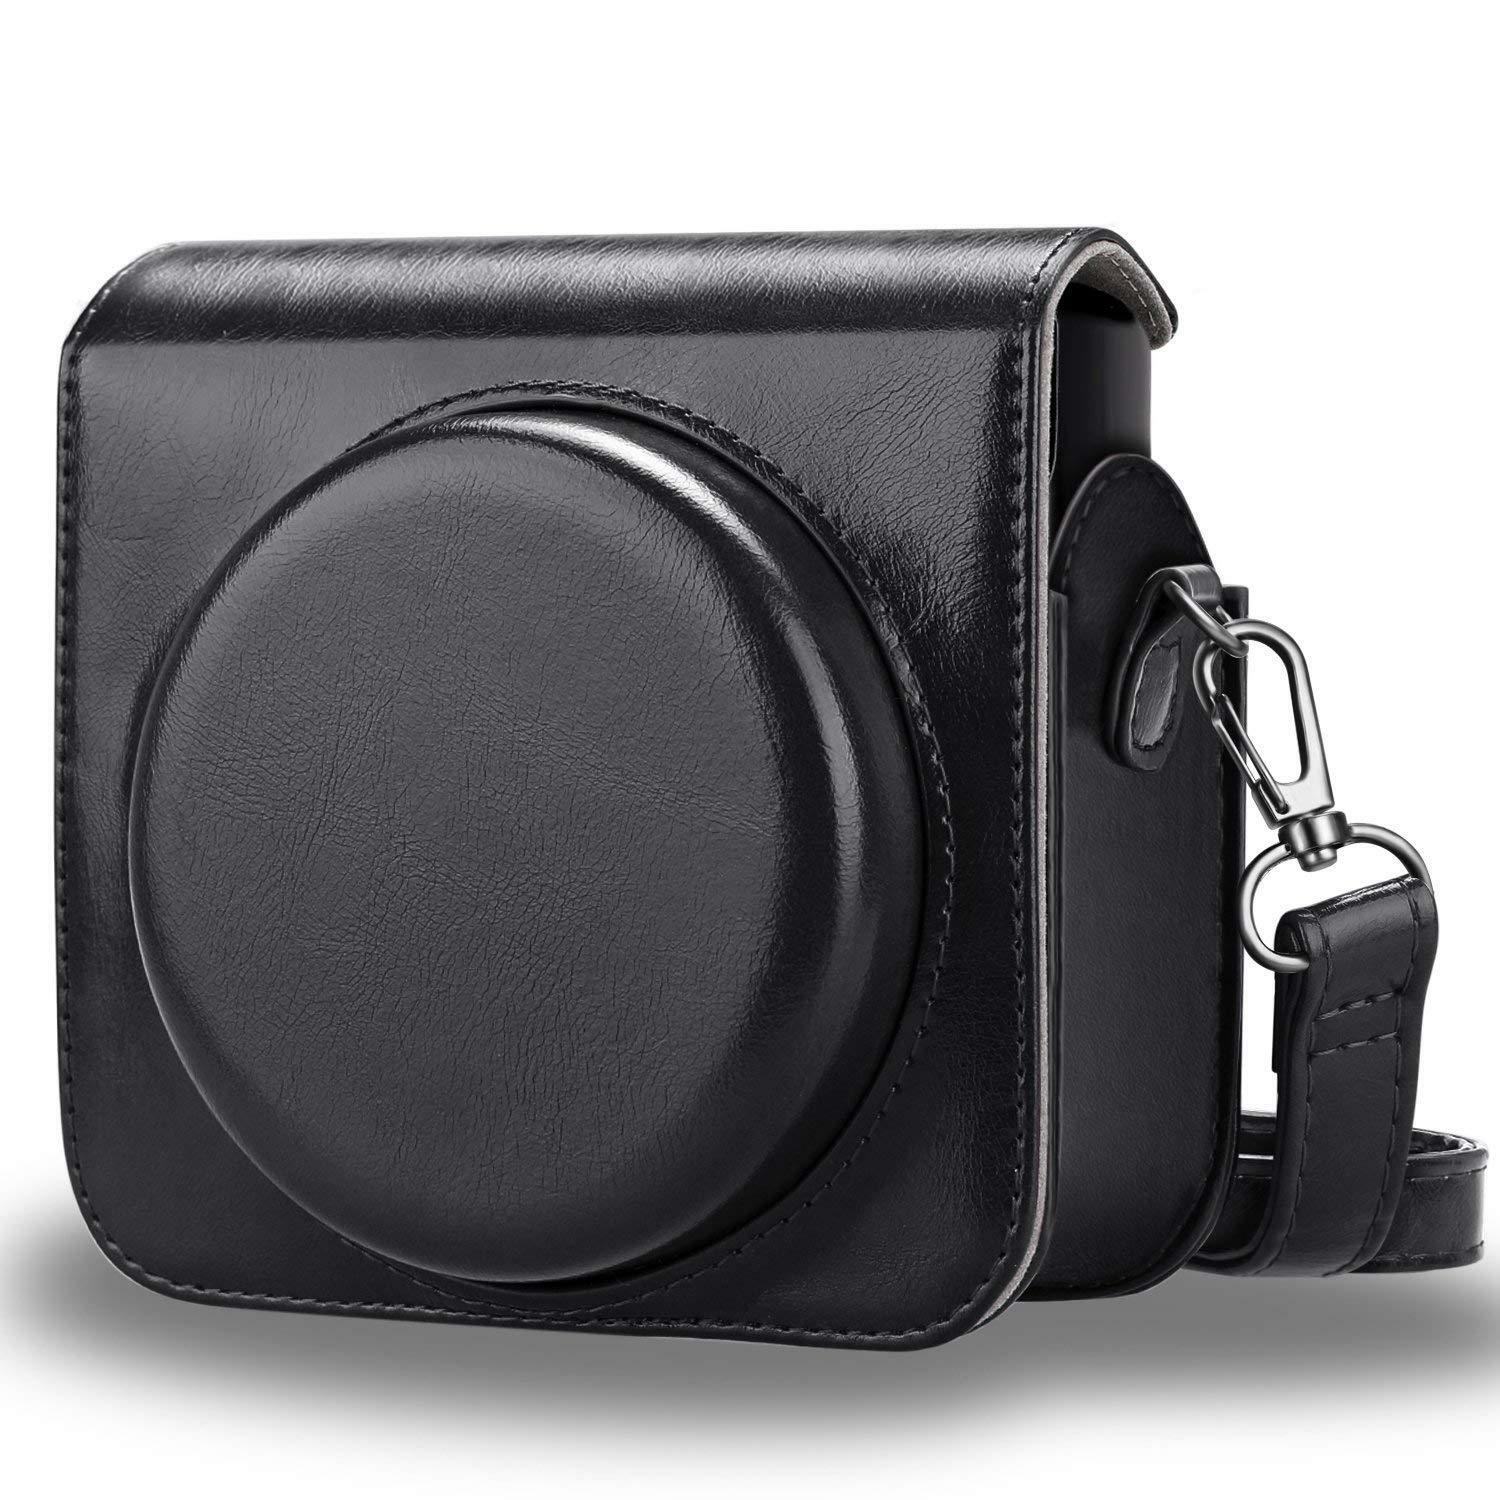 For Fujifilm Instax Square SQ6 Instant Film Camera Case Bag